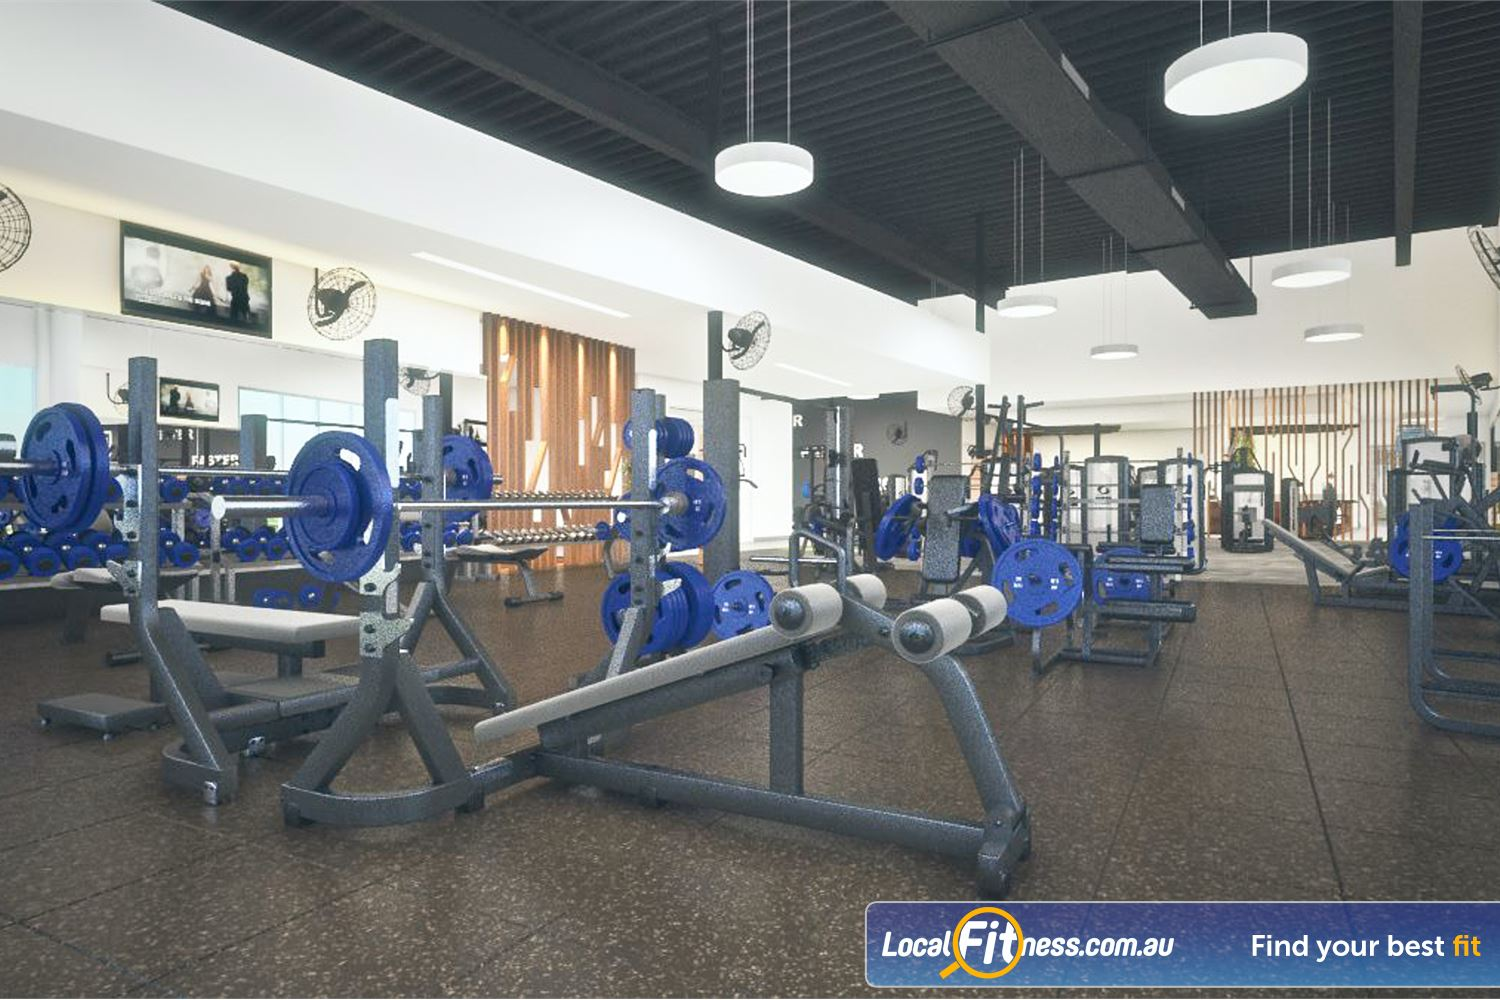 Goodlife Health Clubs Success Plenty of benches, dumbbells, barbells and more.